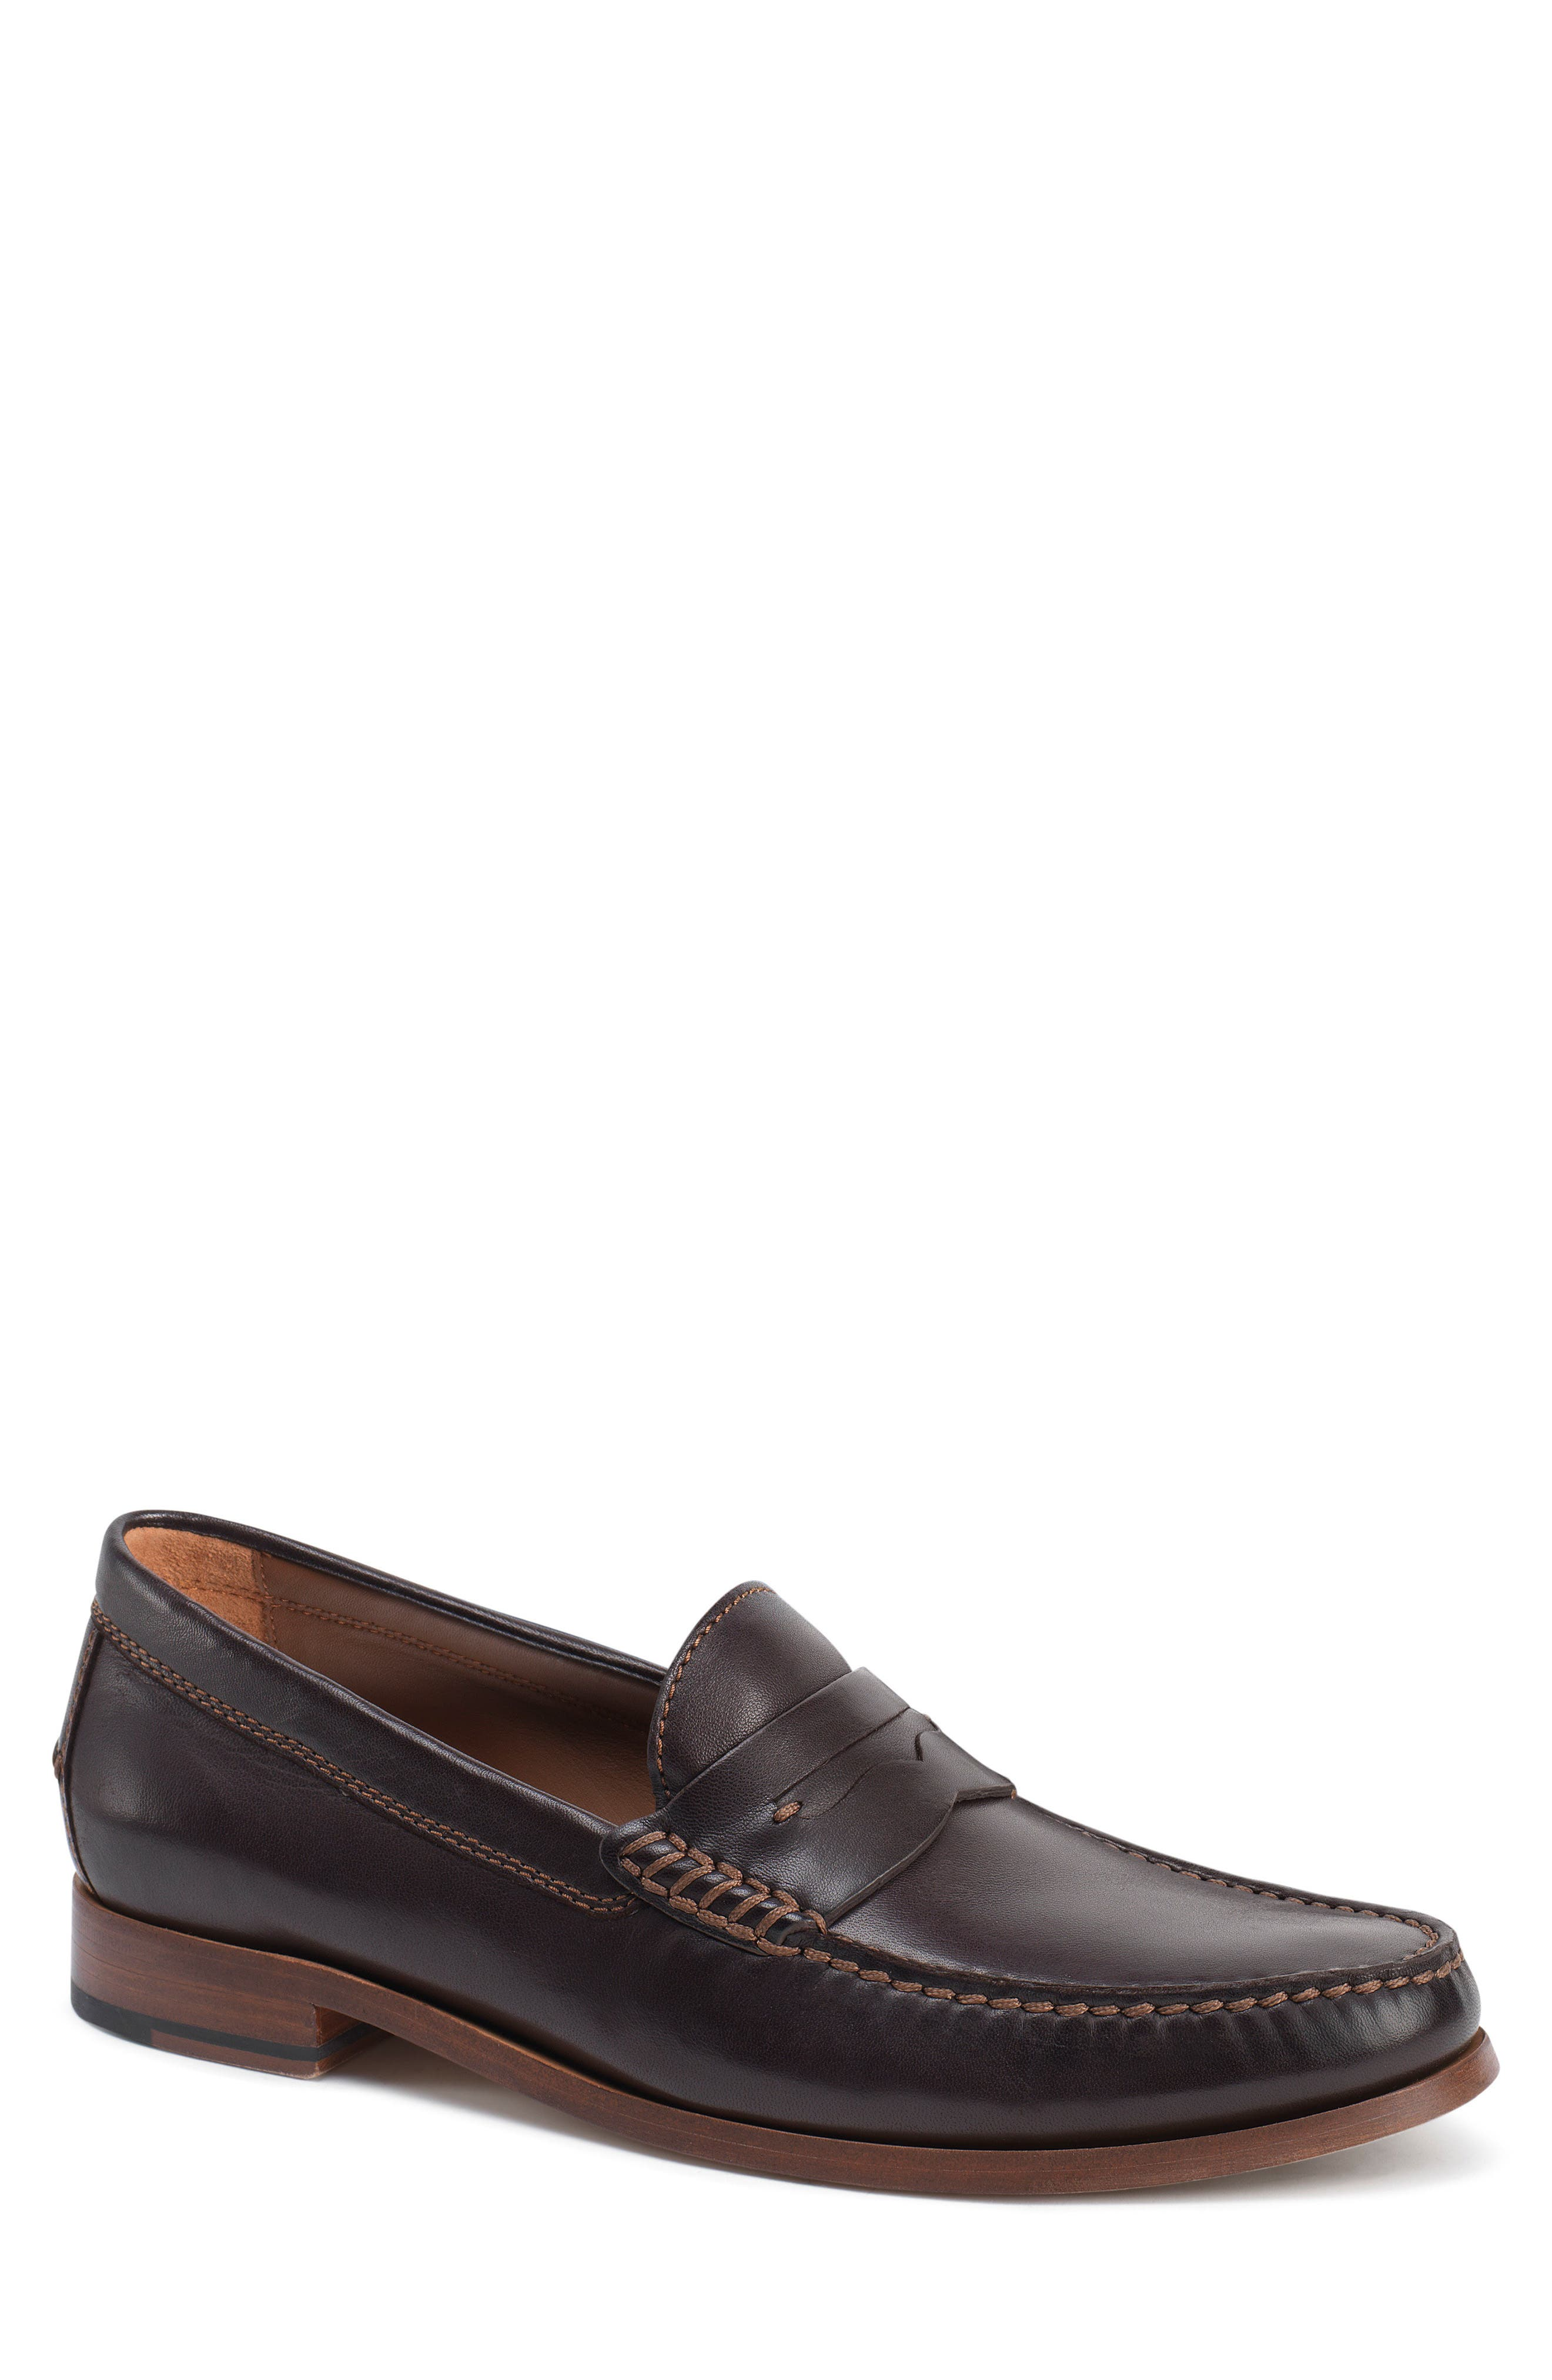 Oiled Horween Chromexcel leather enriches a handsome penny loafer featuring a stacked leather heel and a buffed sole. Style Name: Trask \\\'sadler\\\' Penny Loafer (Men). Style Number: 5234275 4. Available in stores.